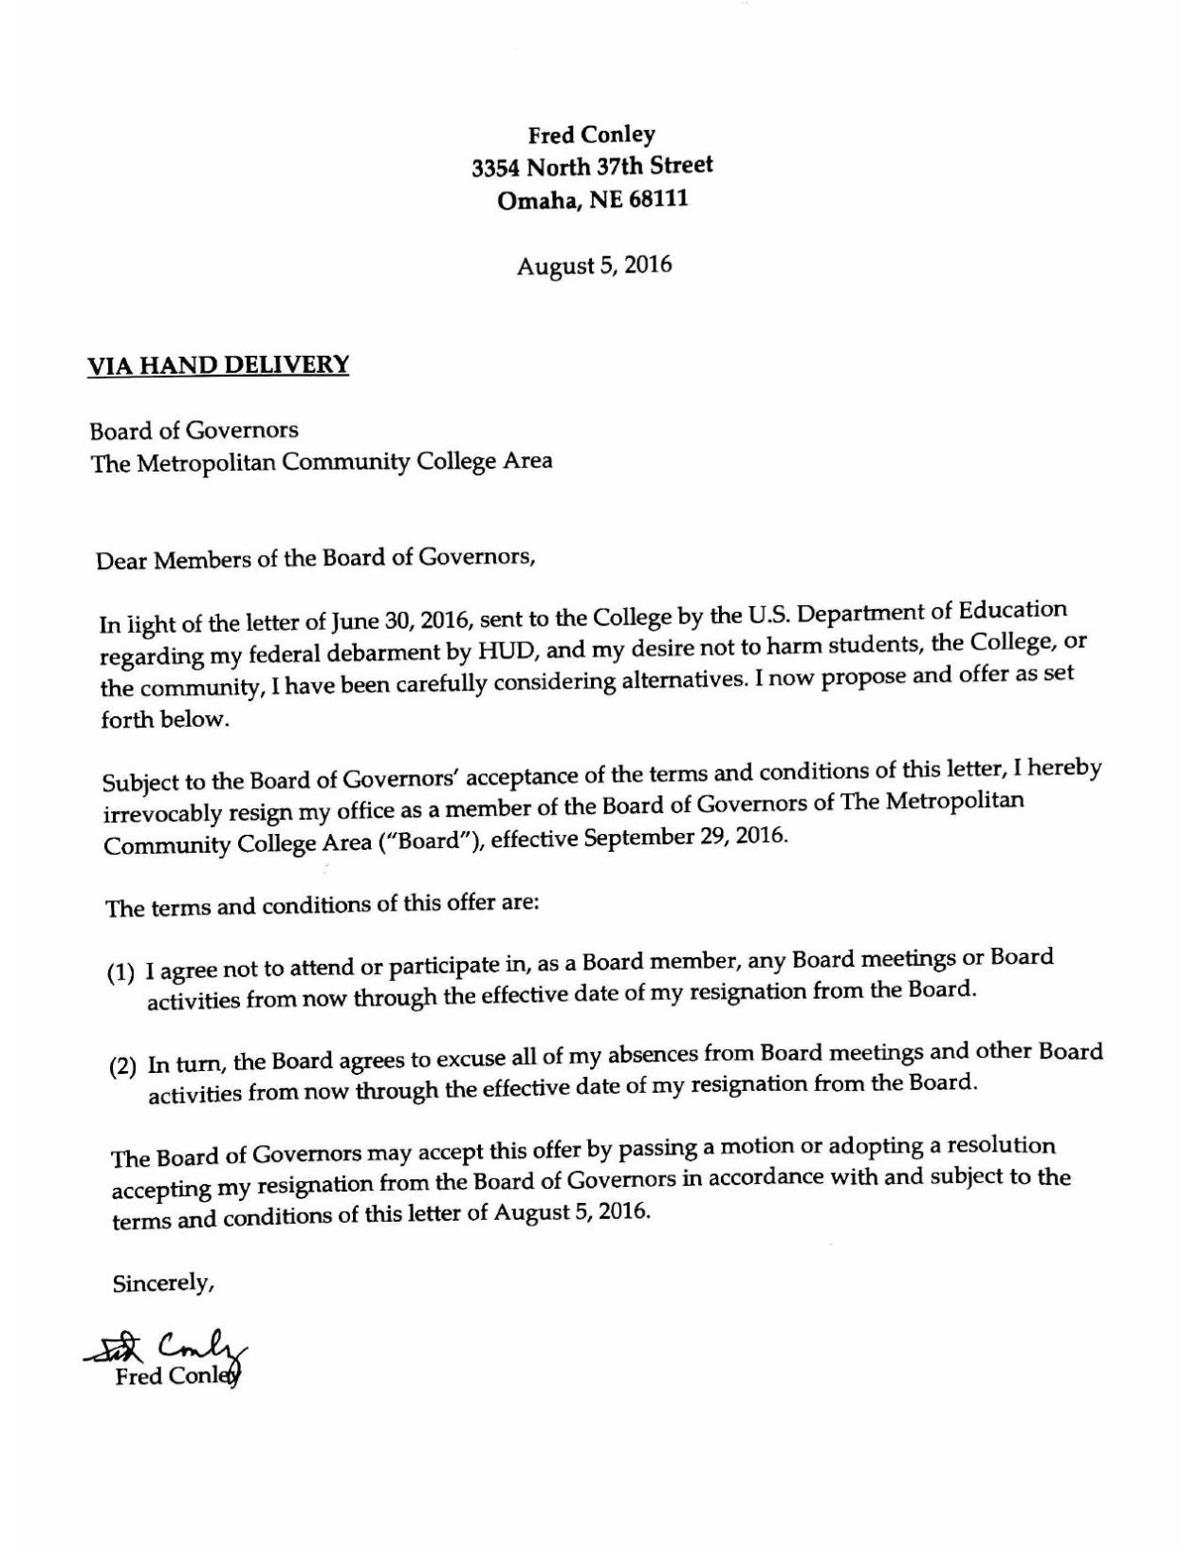 read fred conleys resignation letter pdf omaha download pdf read fred conleys resignation letter pdf magorfo. Resume Example. Resume CV Cover Letter